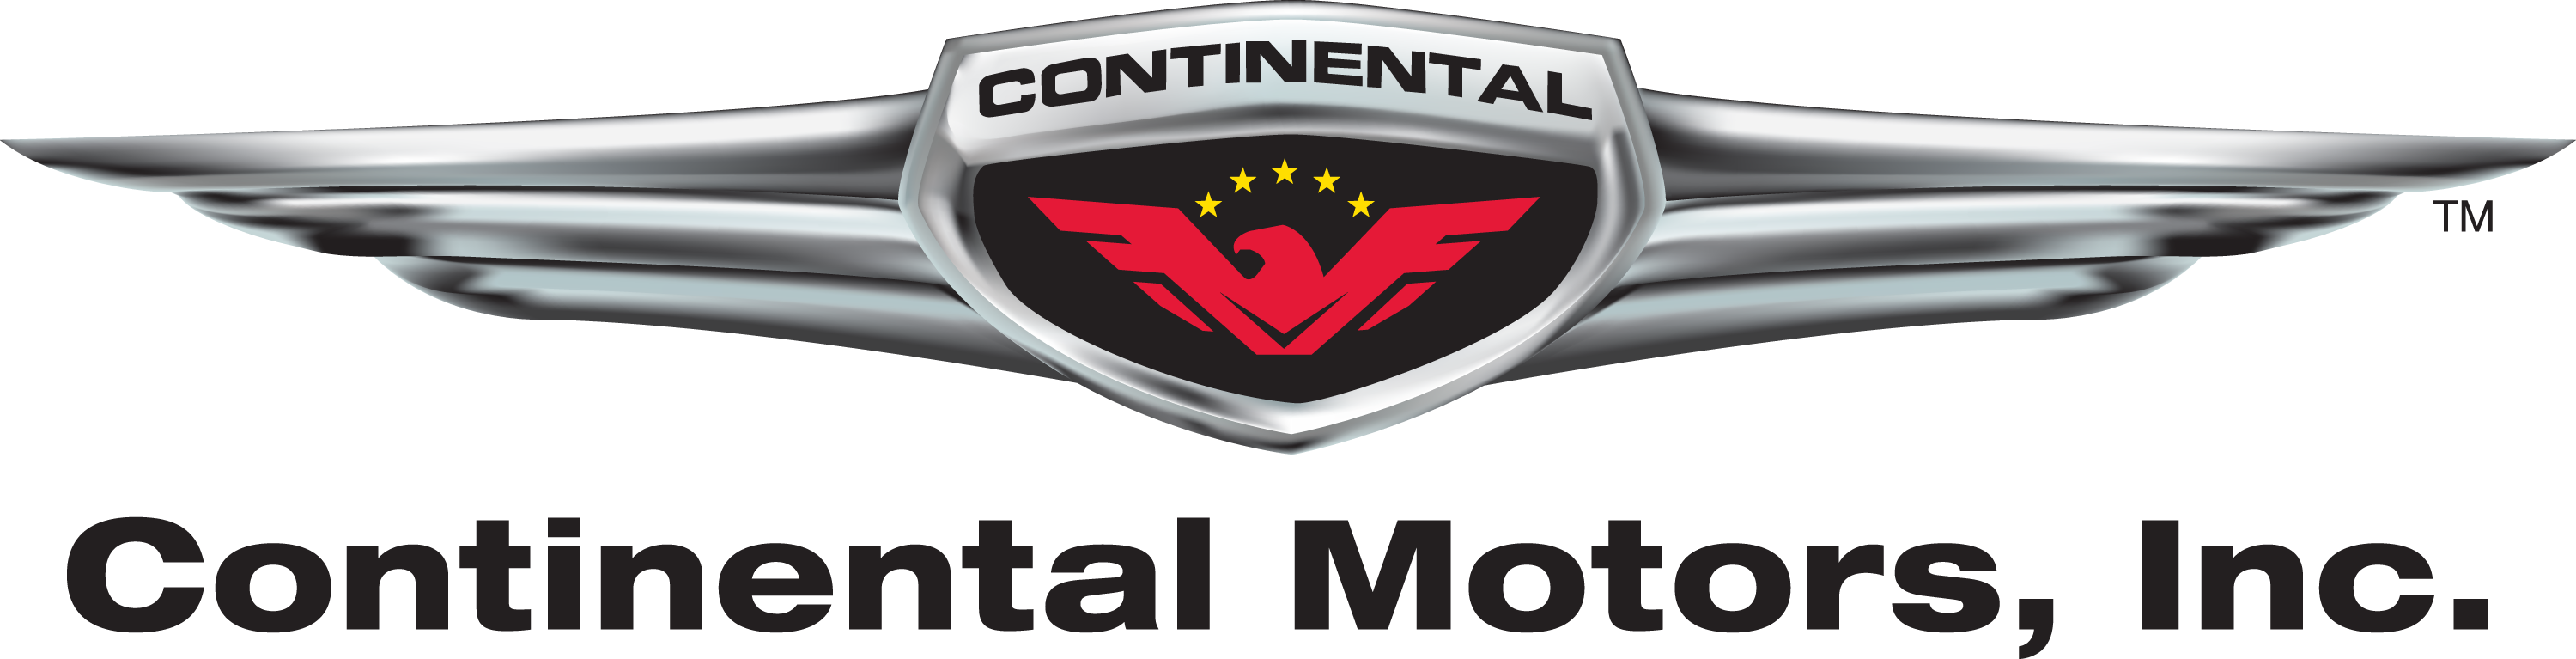 continental motors logo